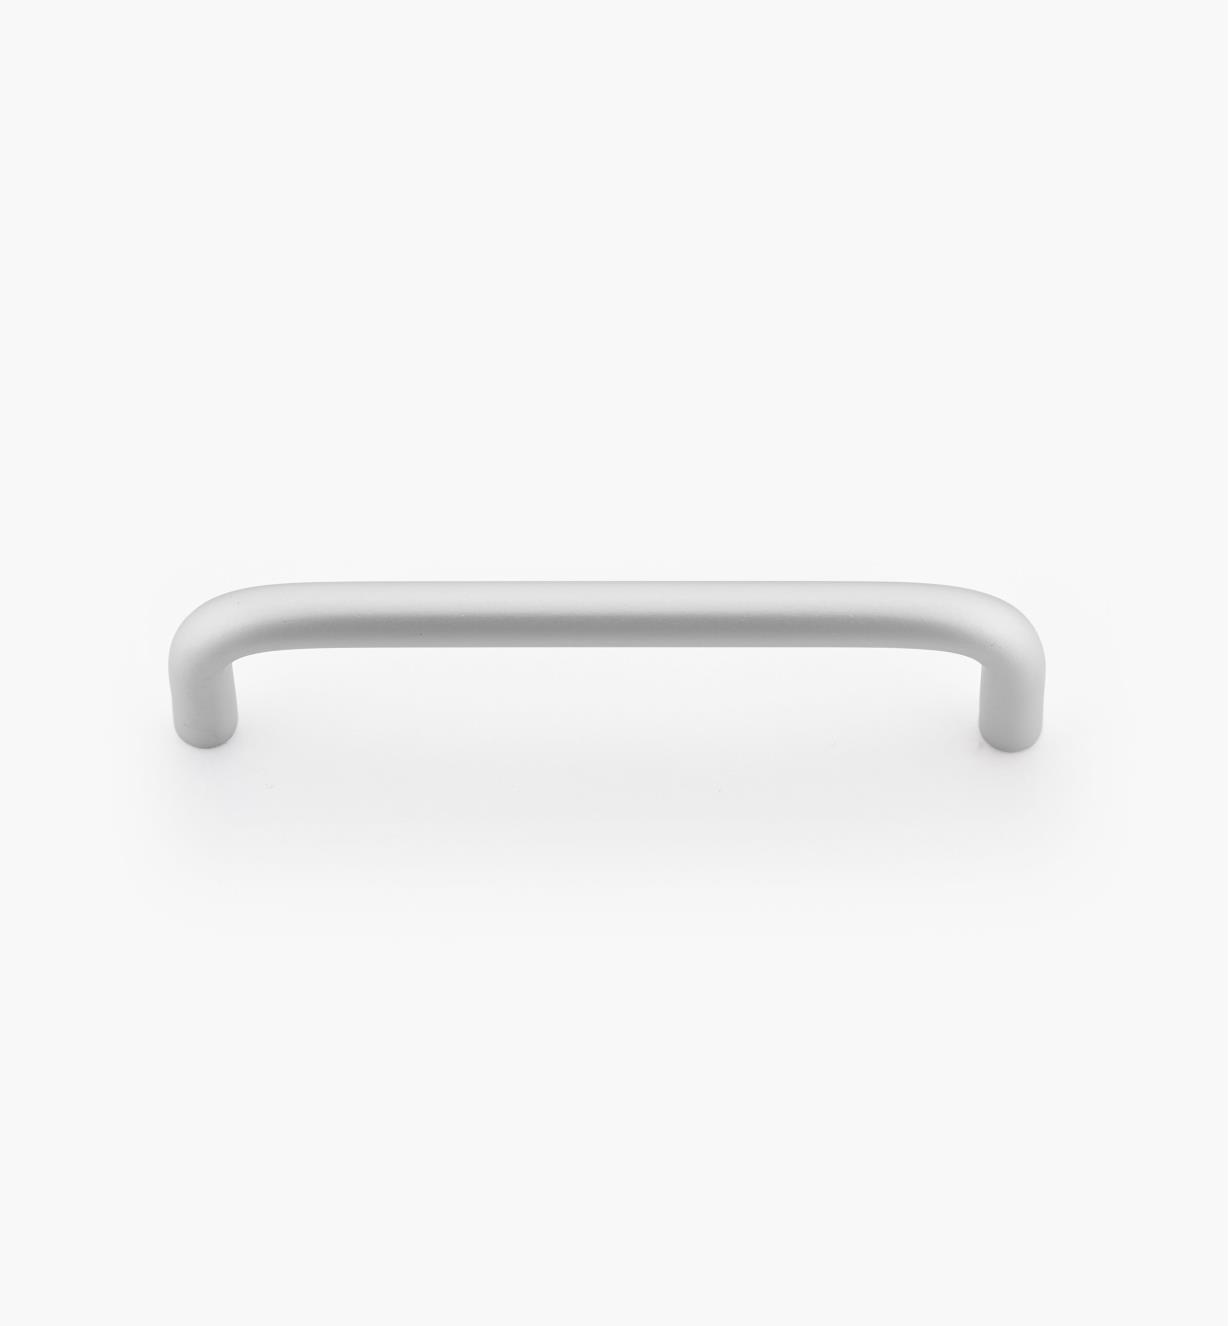 01W7603 - 96mm Aluminum Wire Pull